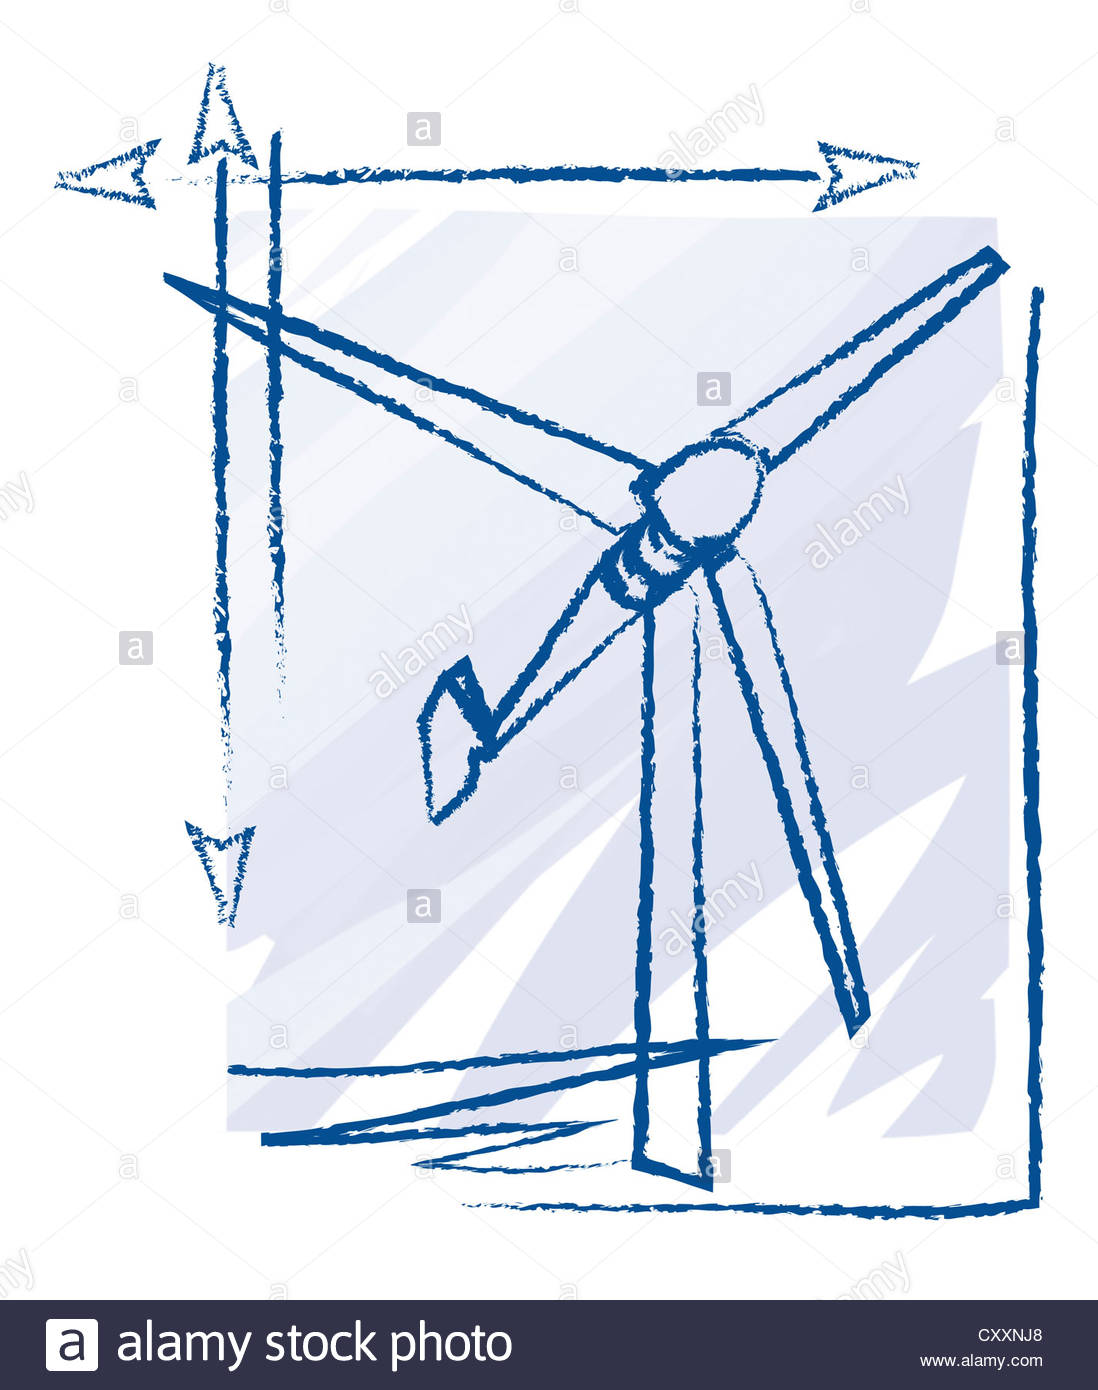 Wind Turbine Drawing At Free For Personal Use Schematic 1098x1390 Technical Illustration Stock Photo Royalty